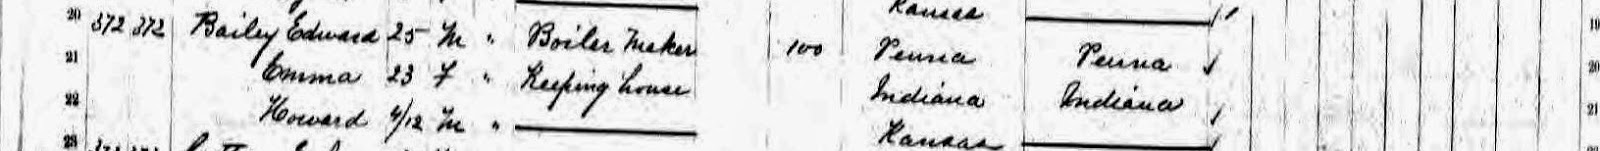 Climbing My Family Tree: 1875 Kansas State Census, Edward Bailey